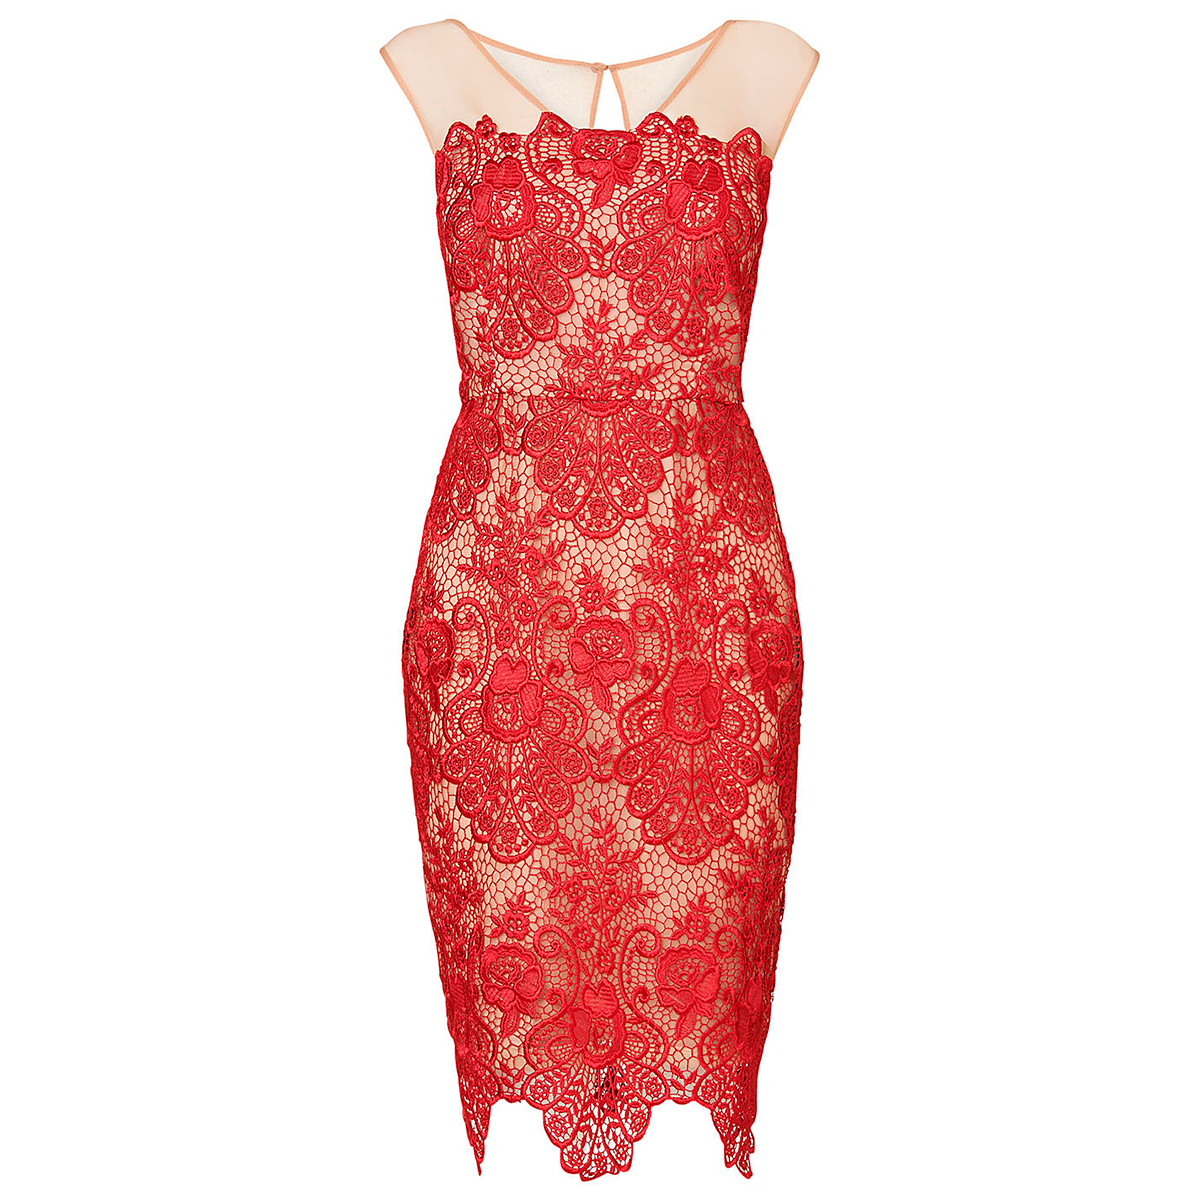 2014 Christmas Party Dress: 10 Party Dresses Perfect For Christmas